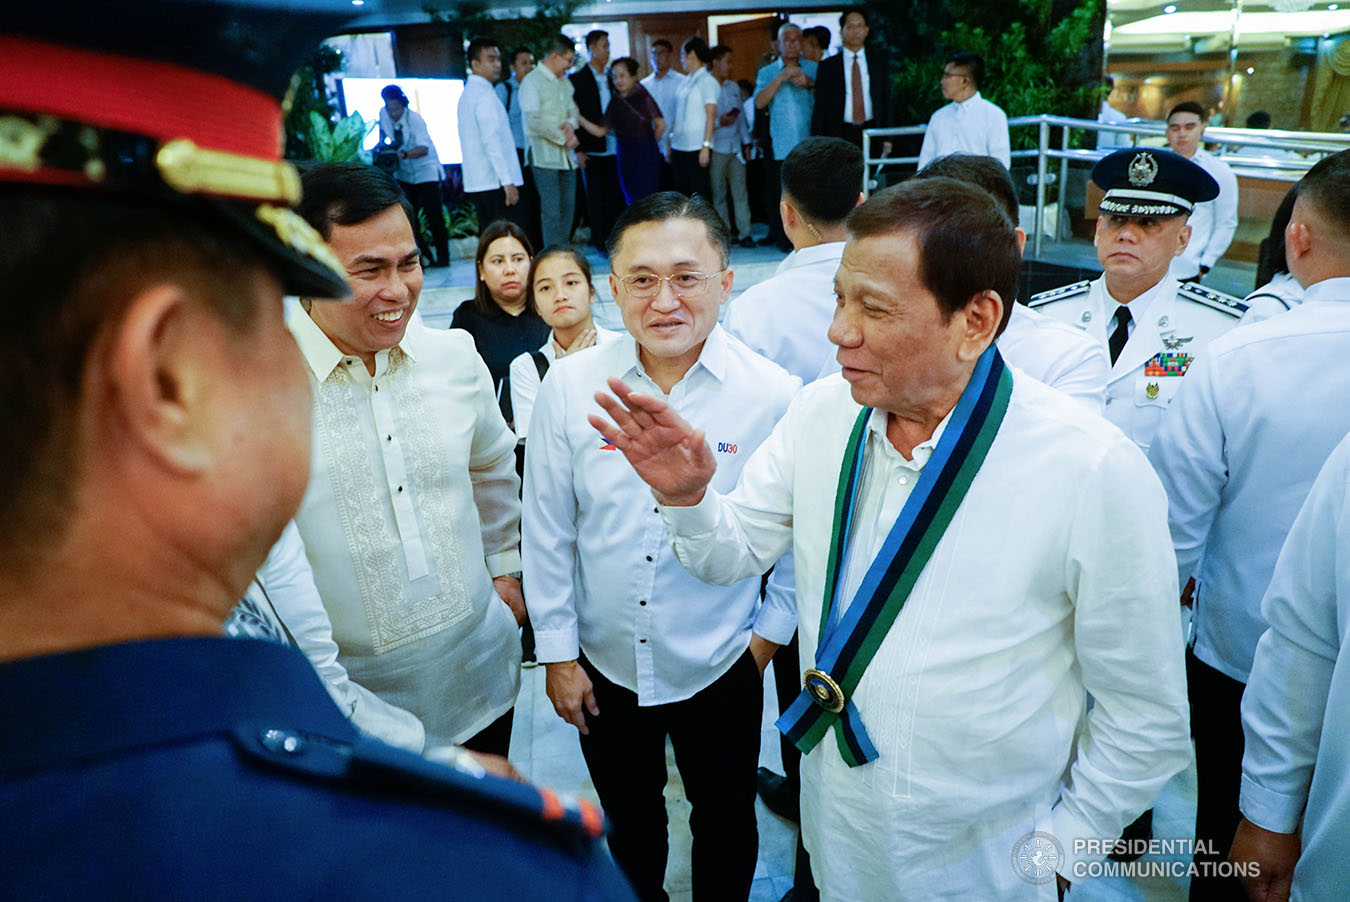 President Rodrigo Roa Duterte shares a light moment with some of the guests during the Armed Forces of the Philippines (AFP) Change of Command ceremony at Camp General Emilio Aguinaldo in Quezon City on January 4, 2020. KING RODRIGUEZ/PRESIDENTIAL PHOTO